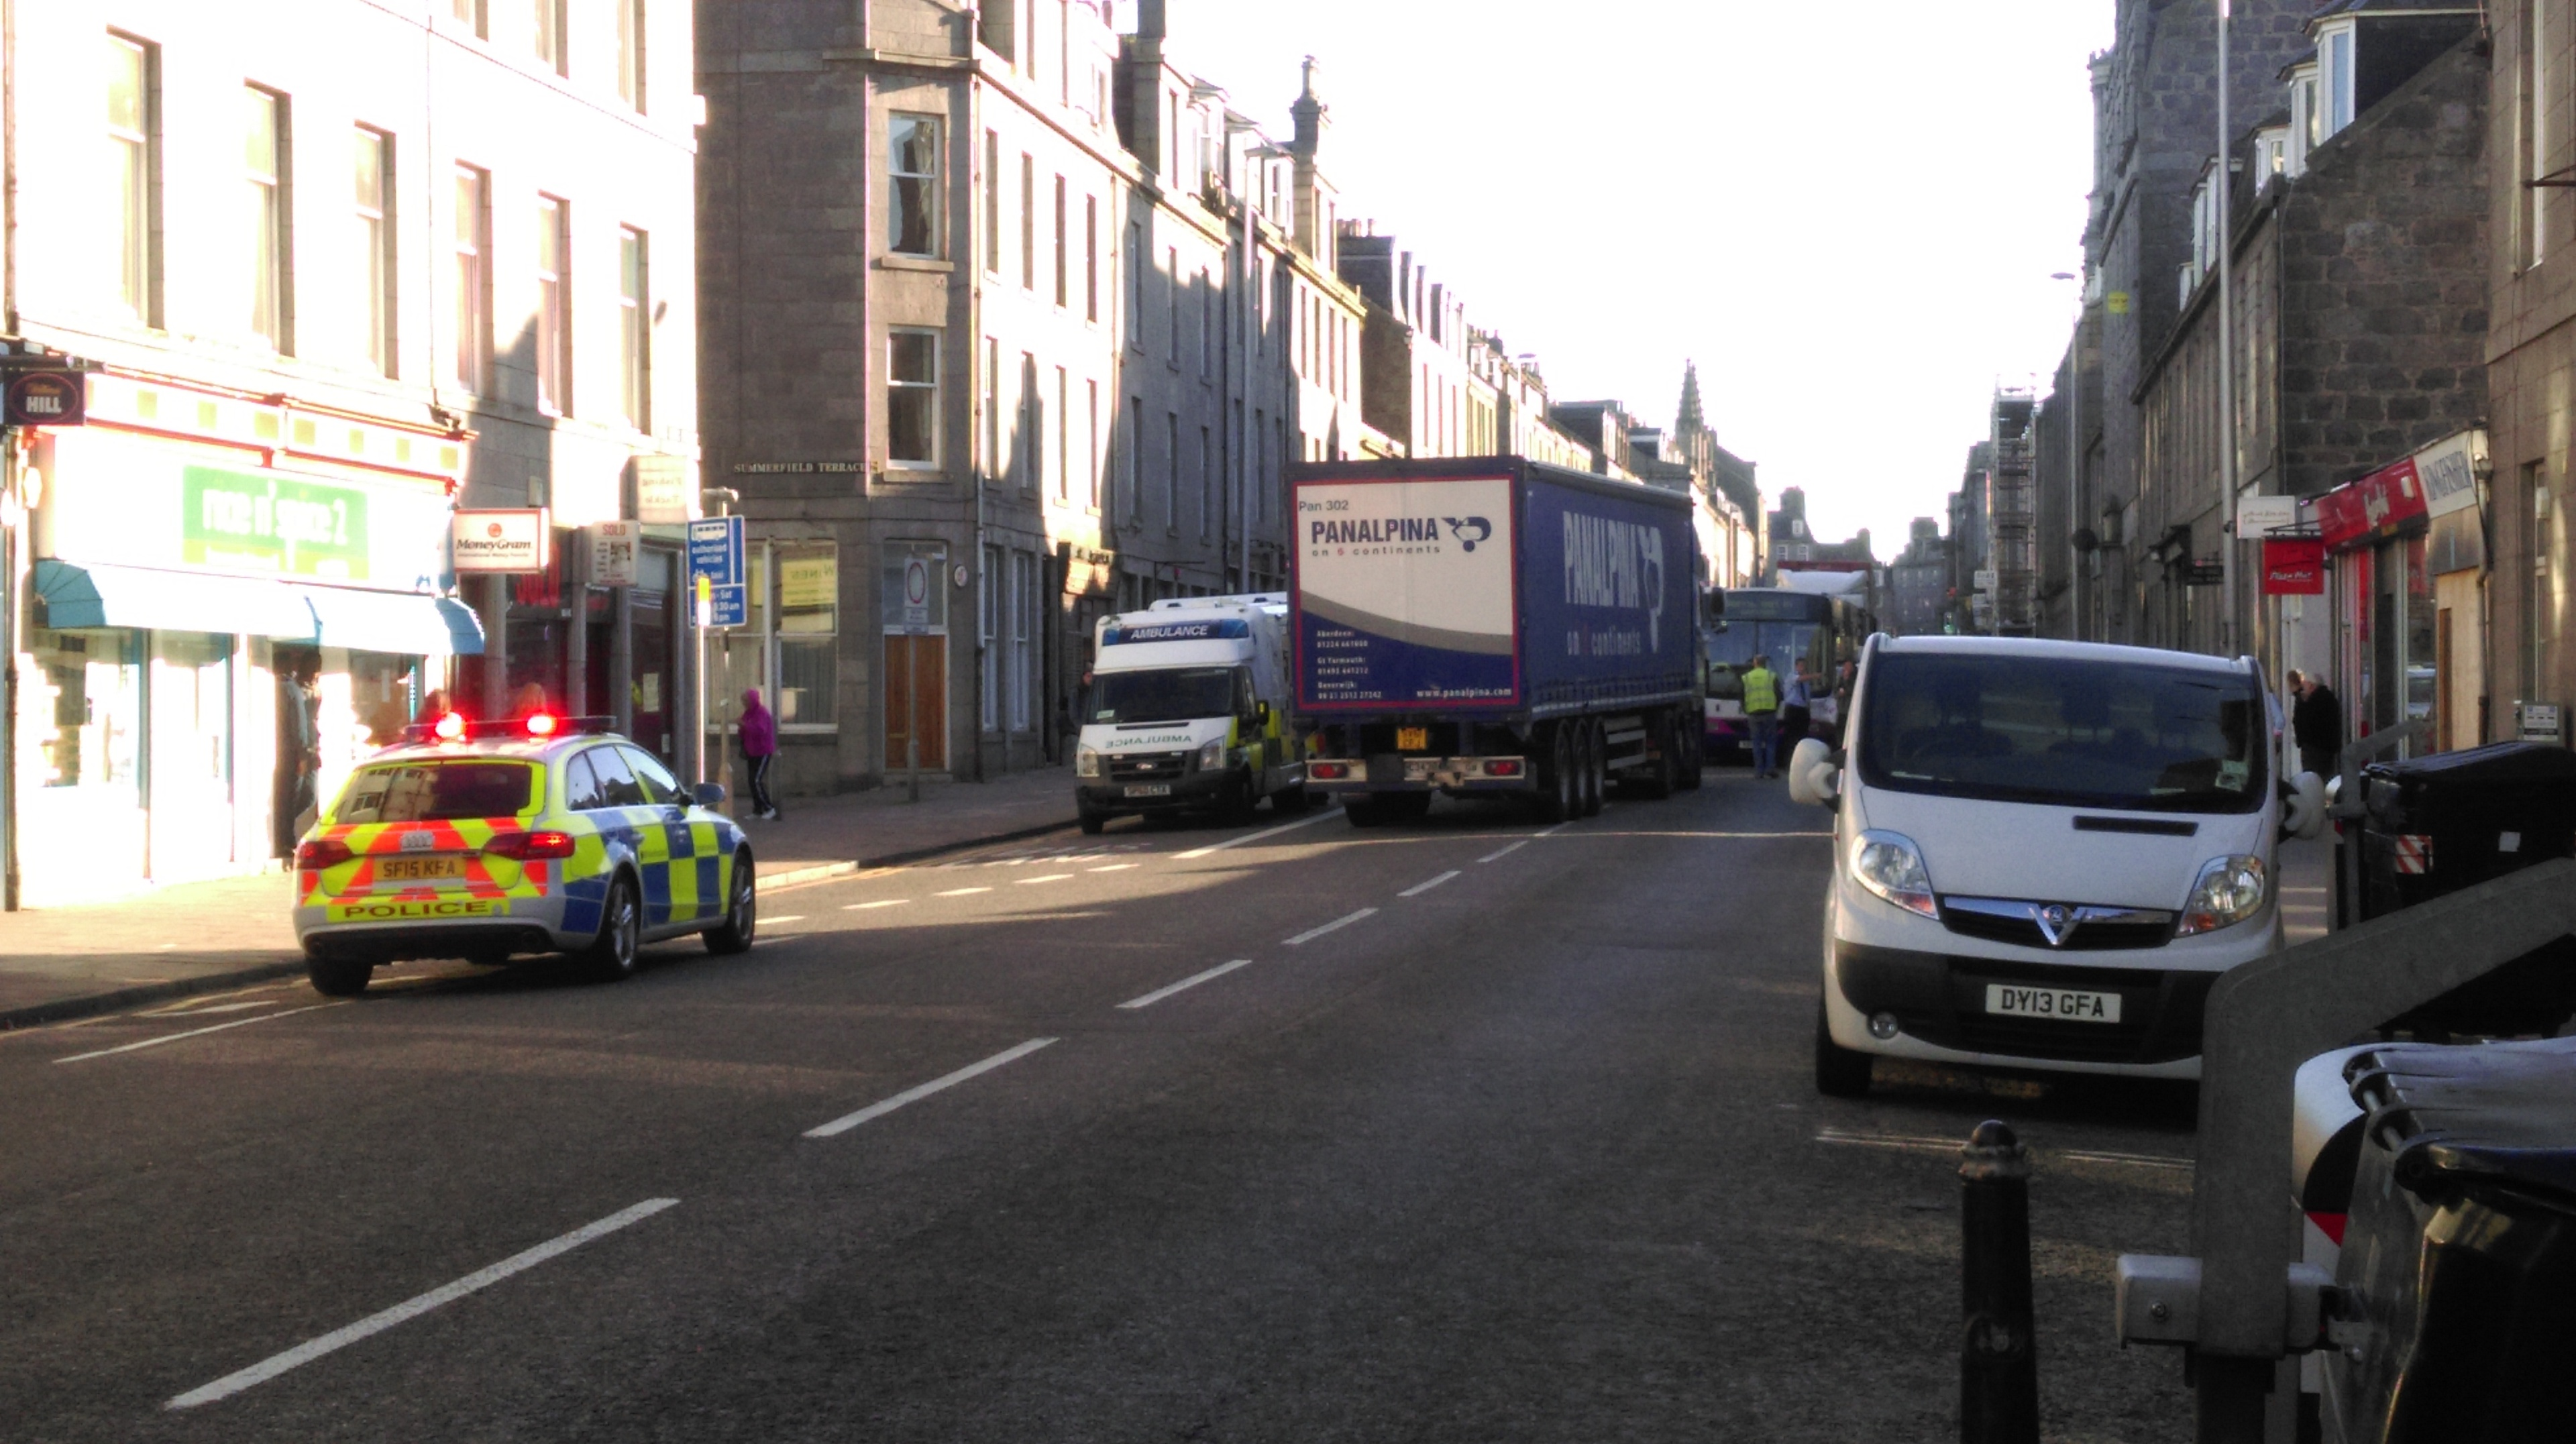 The woman was hit by the lorry on King Street, Aberdeen